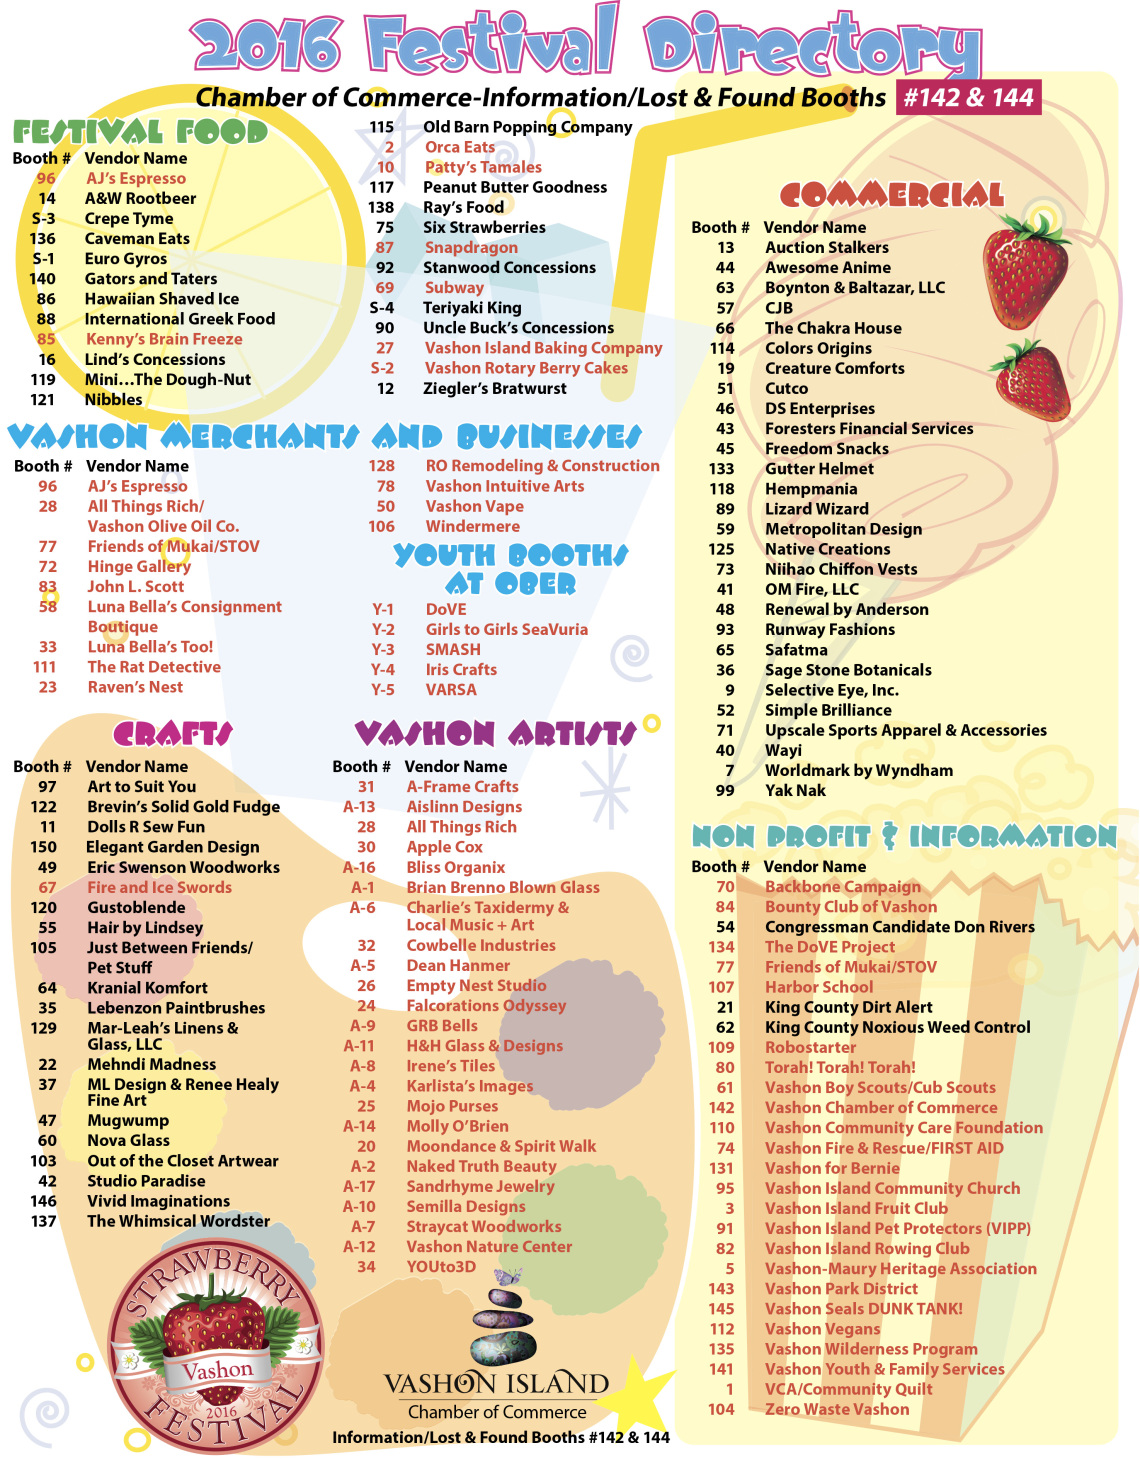 Strawberry Fest 2016 Directory.indd